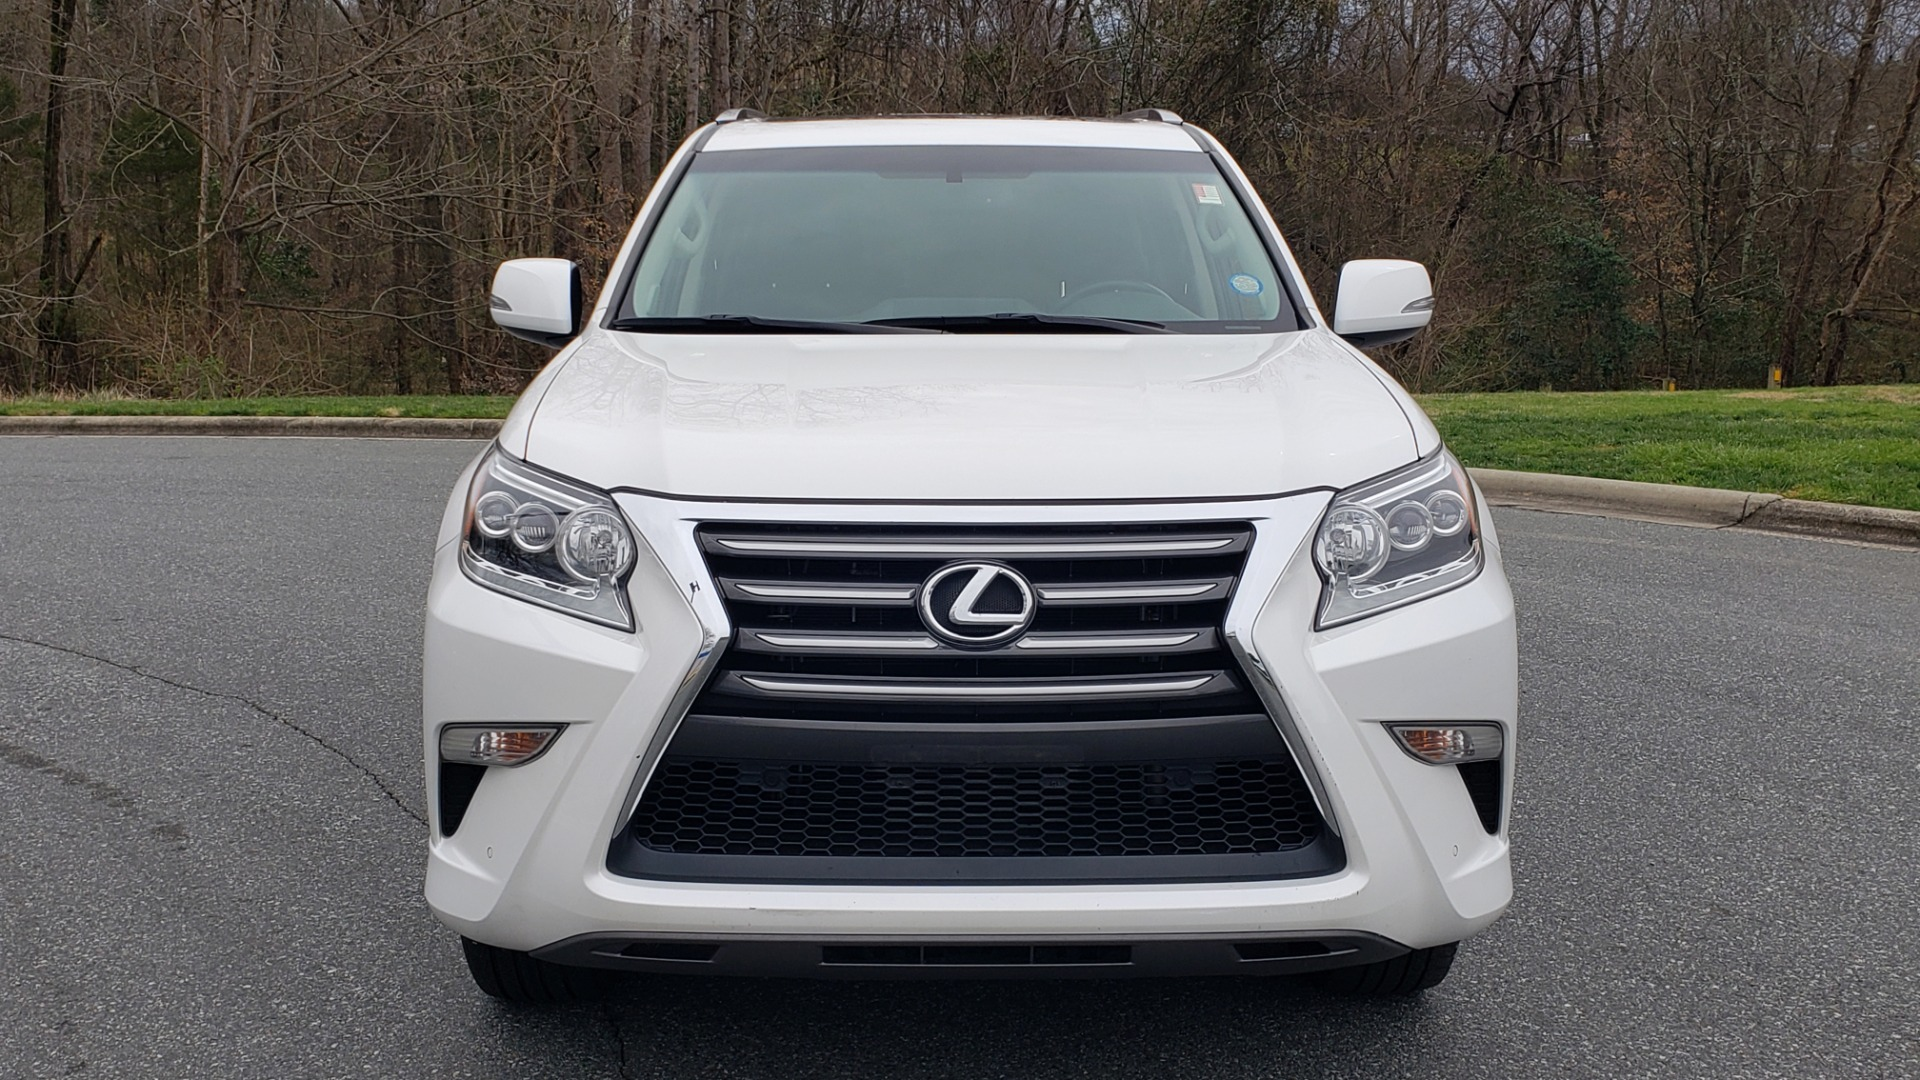 Used 2017 Lexus GX 460 4WD / NAV / VENT STS / SUNROOF / PARK ASST / BSM for sale Sold at Formula Imports in Charlotte NC 28227 26